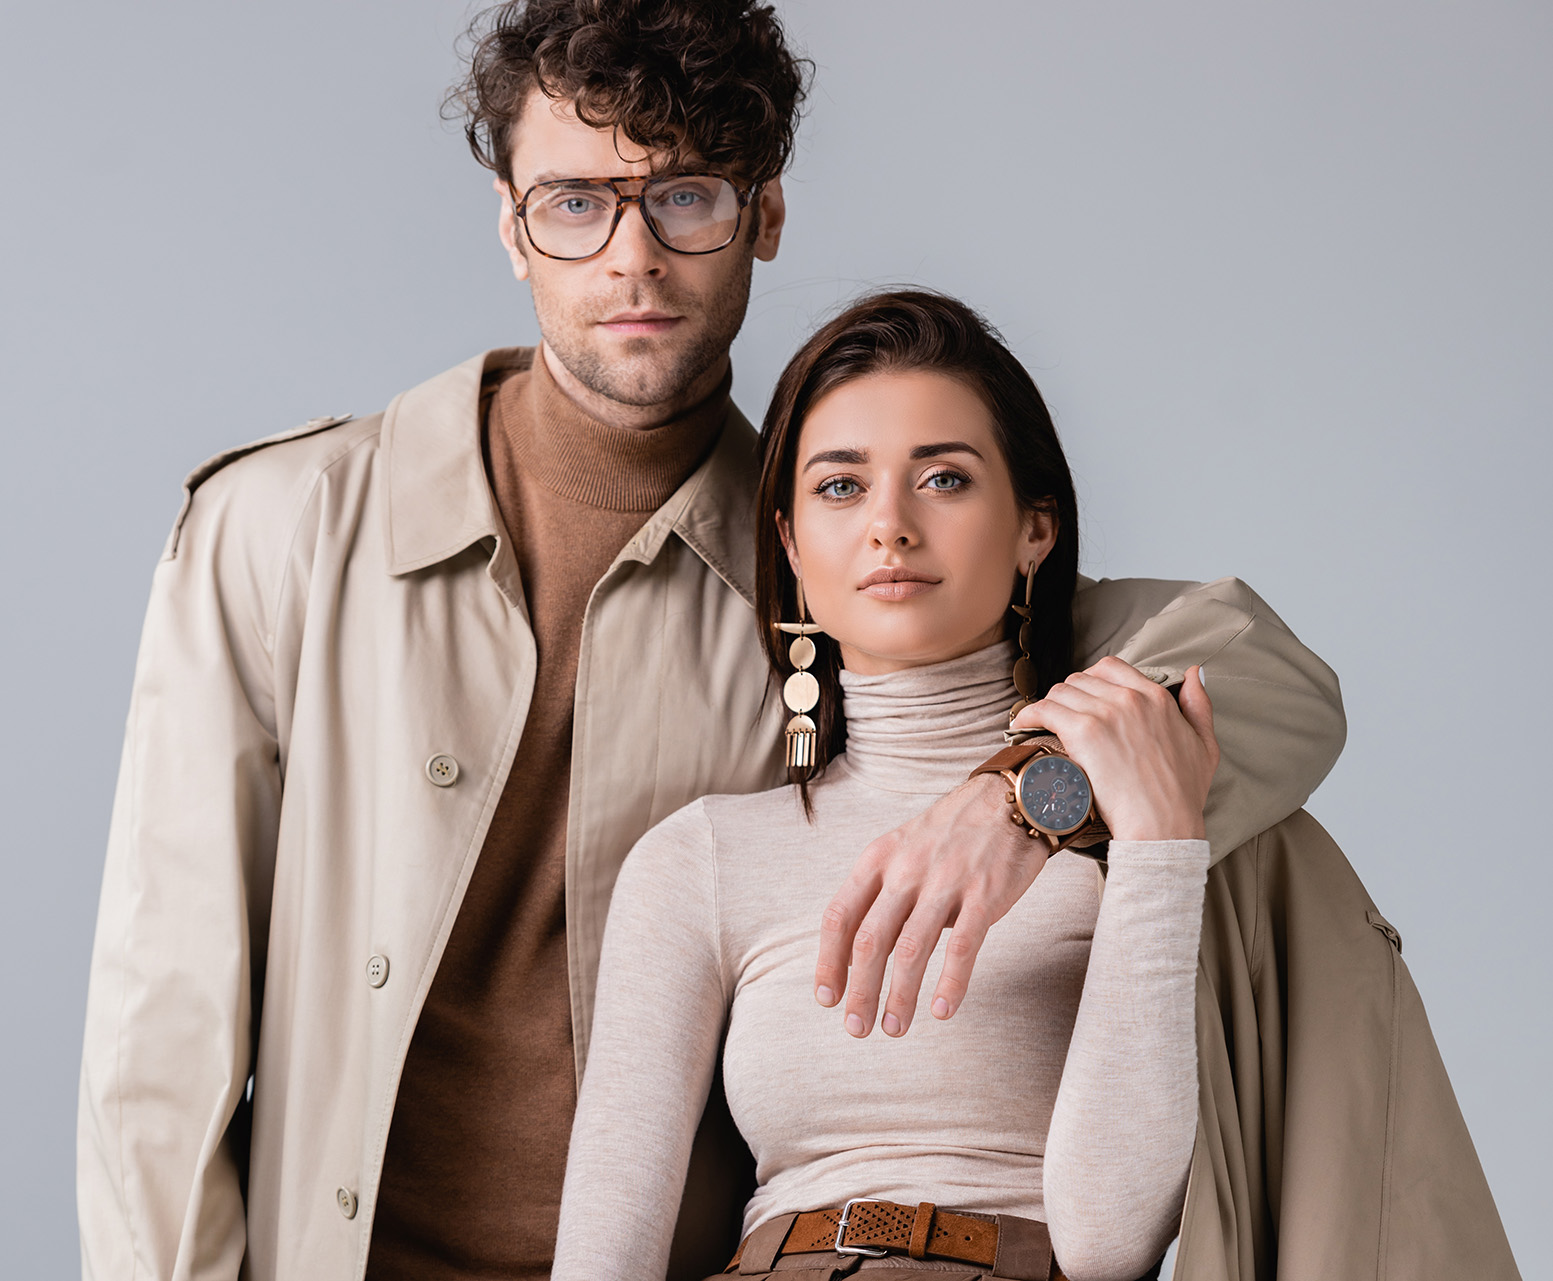 handsome, trendy man embracing stylish woman while looking at camera isolated on grey